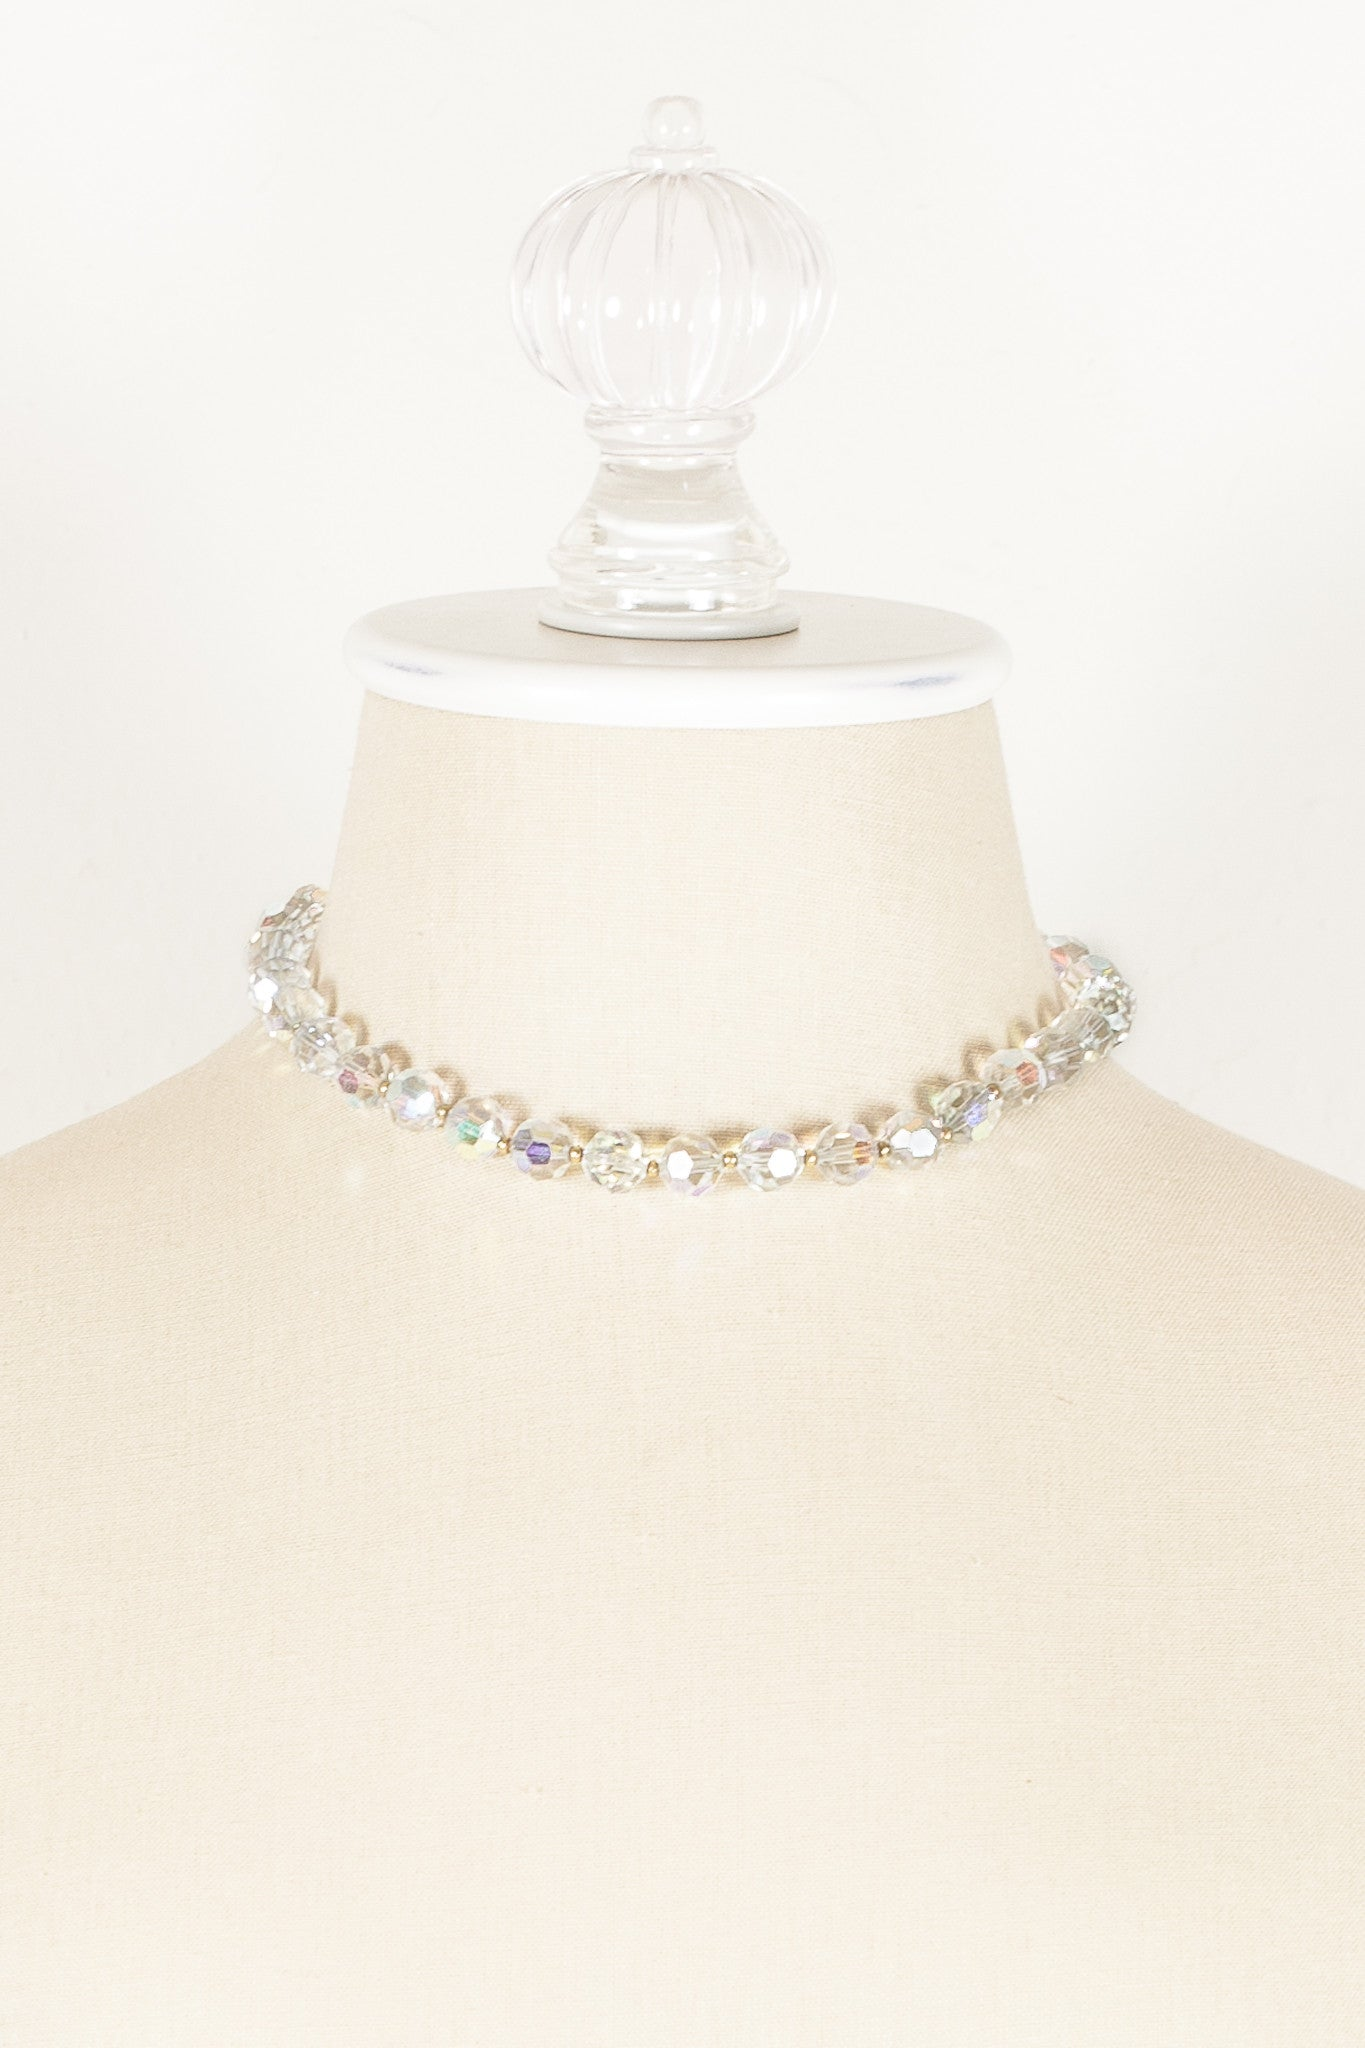 50's__Lisner__Aurora Borealis Crystal Necklace